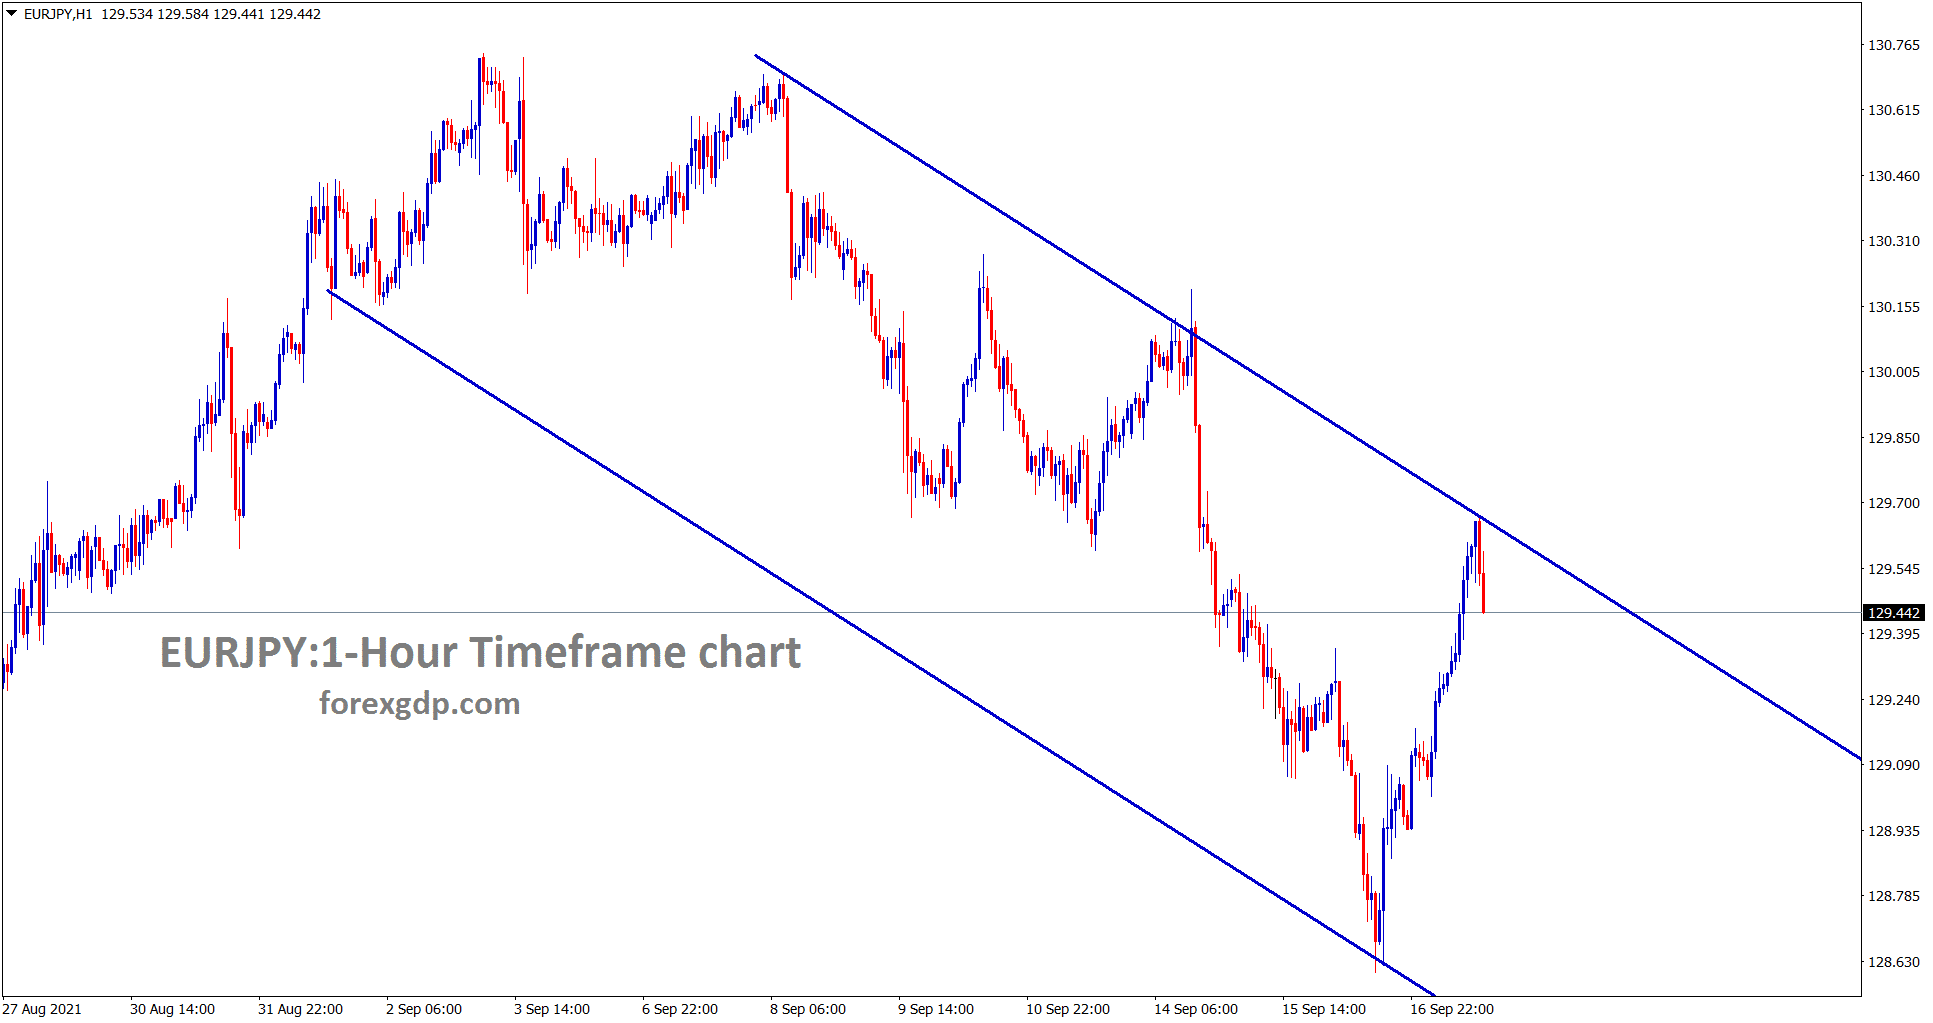 EURJPY hits the lower high area of the descending channel